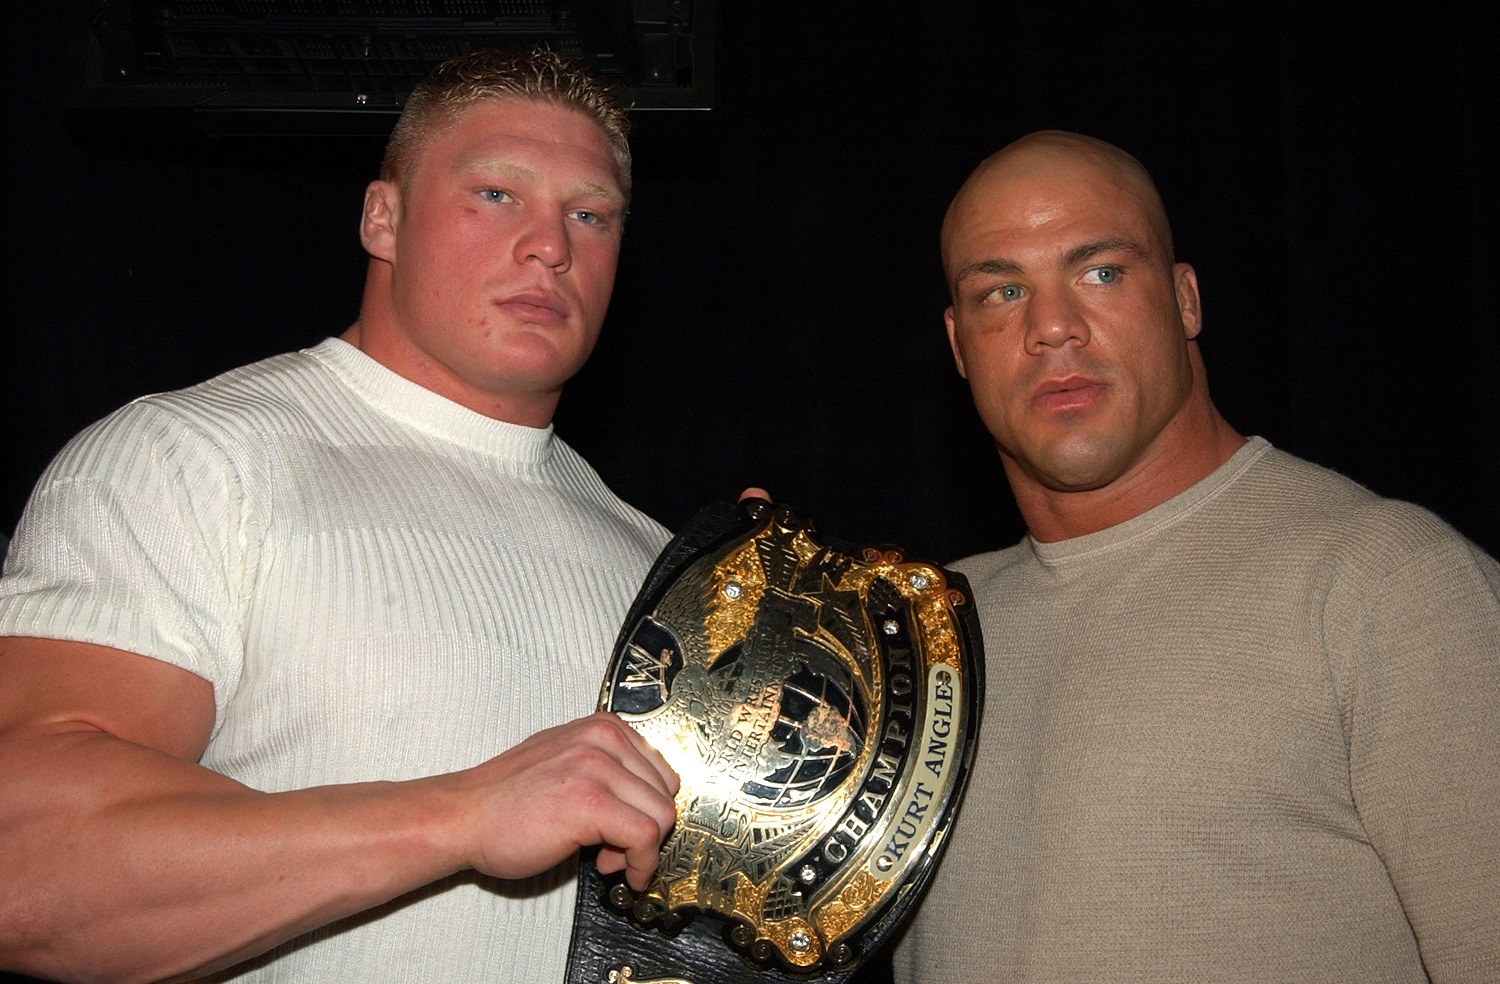 Brock Lesnar and Kurt Angle had arranged to have the WWE title change hands at WrestleMania 19.| Theo Wargo/WireImage